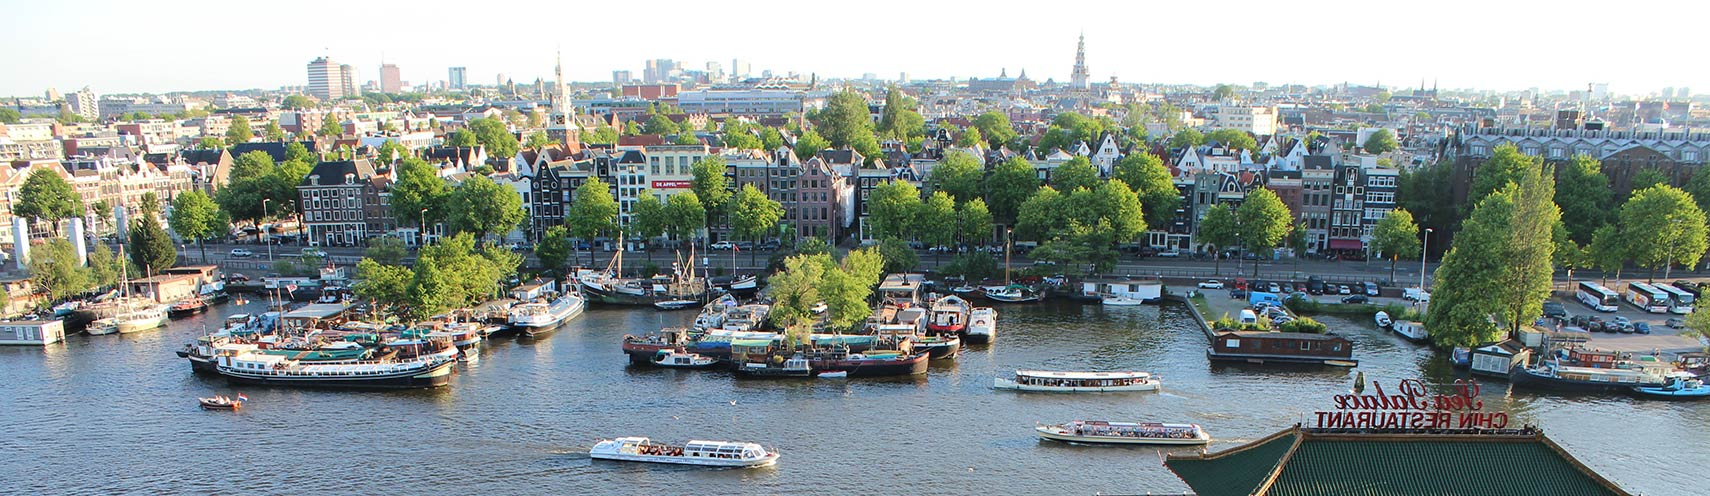 Amsterdam Cityscape towards Oosterdok